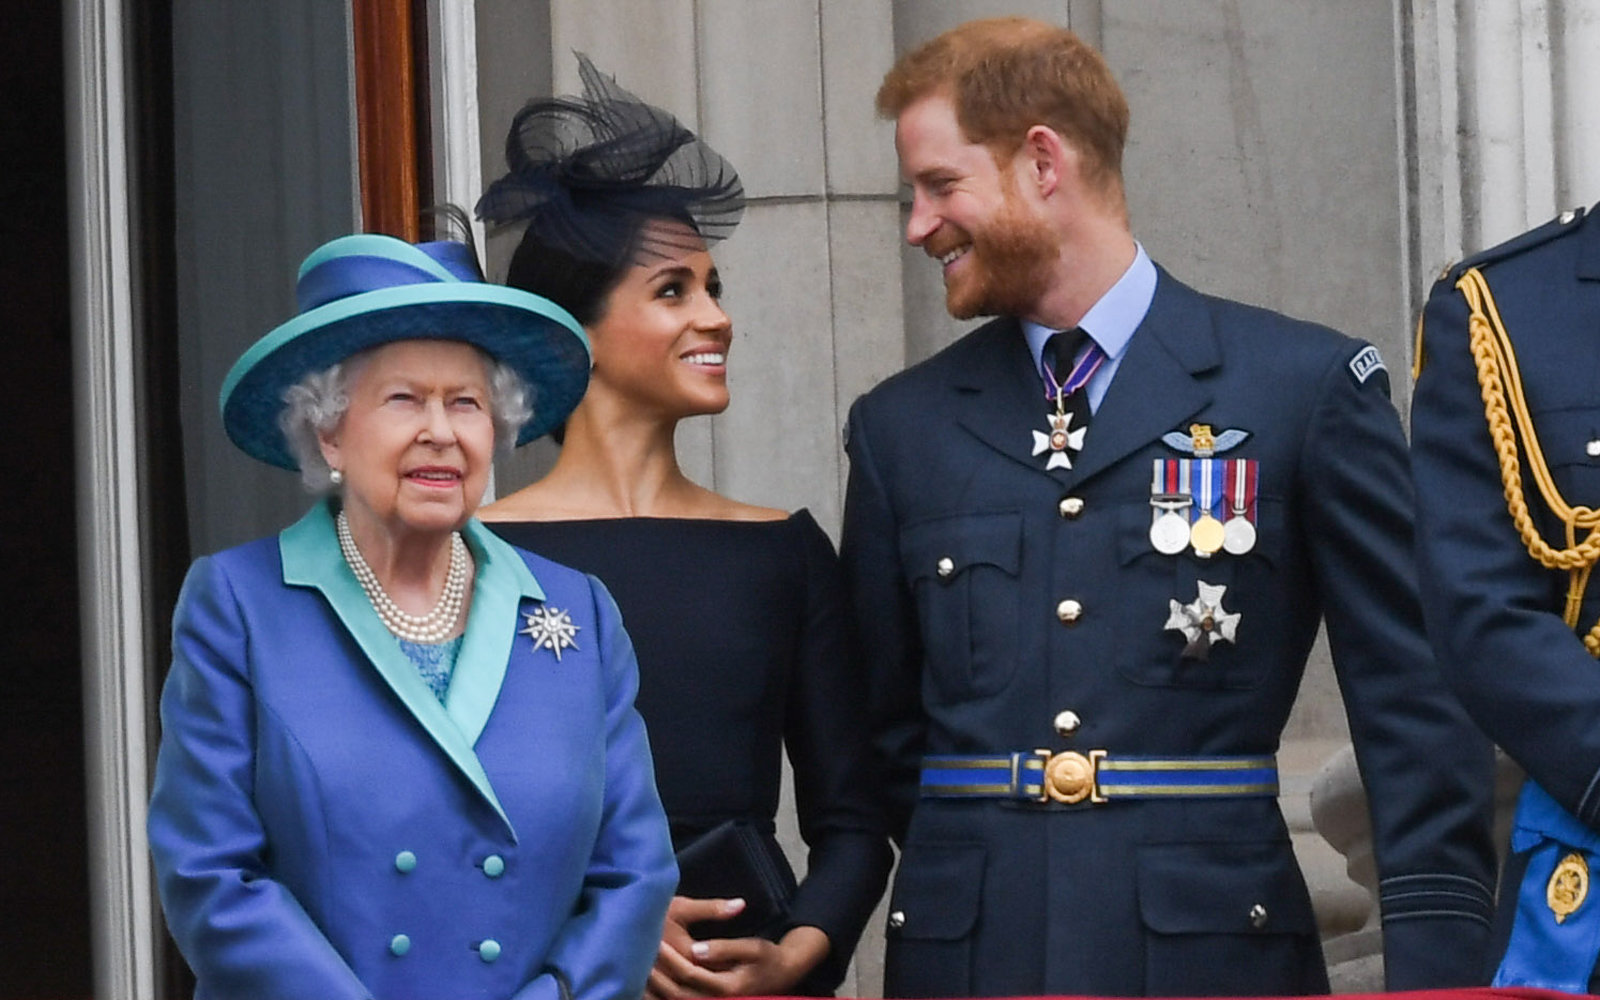 Queen Elizabeth II with Prince Harry and Duchess Meghan of Sussex